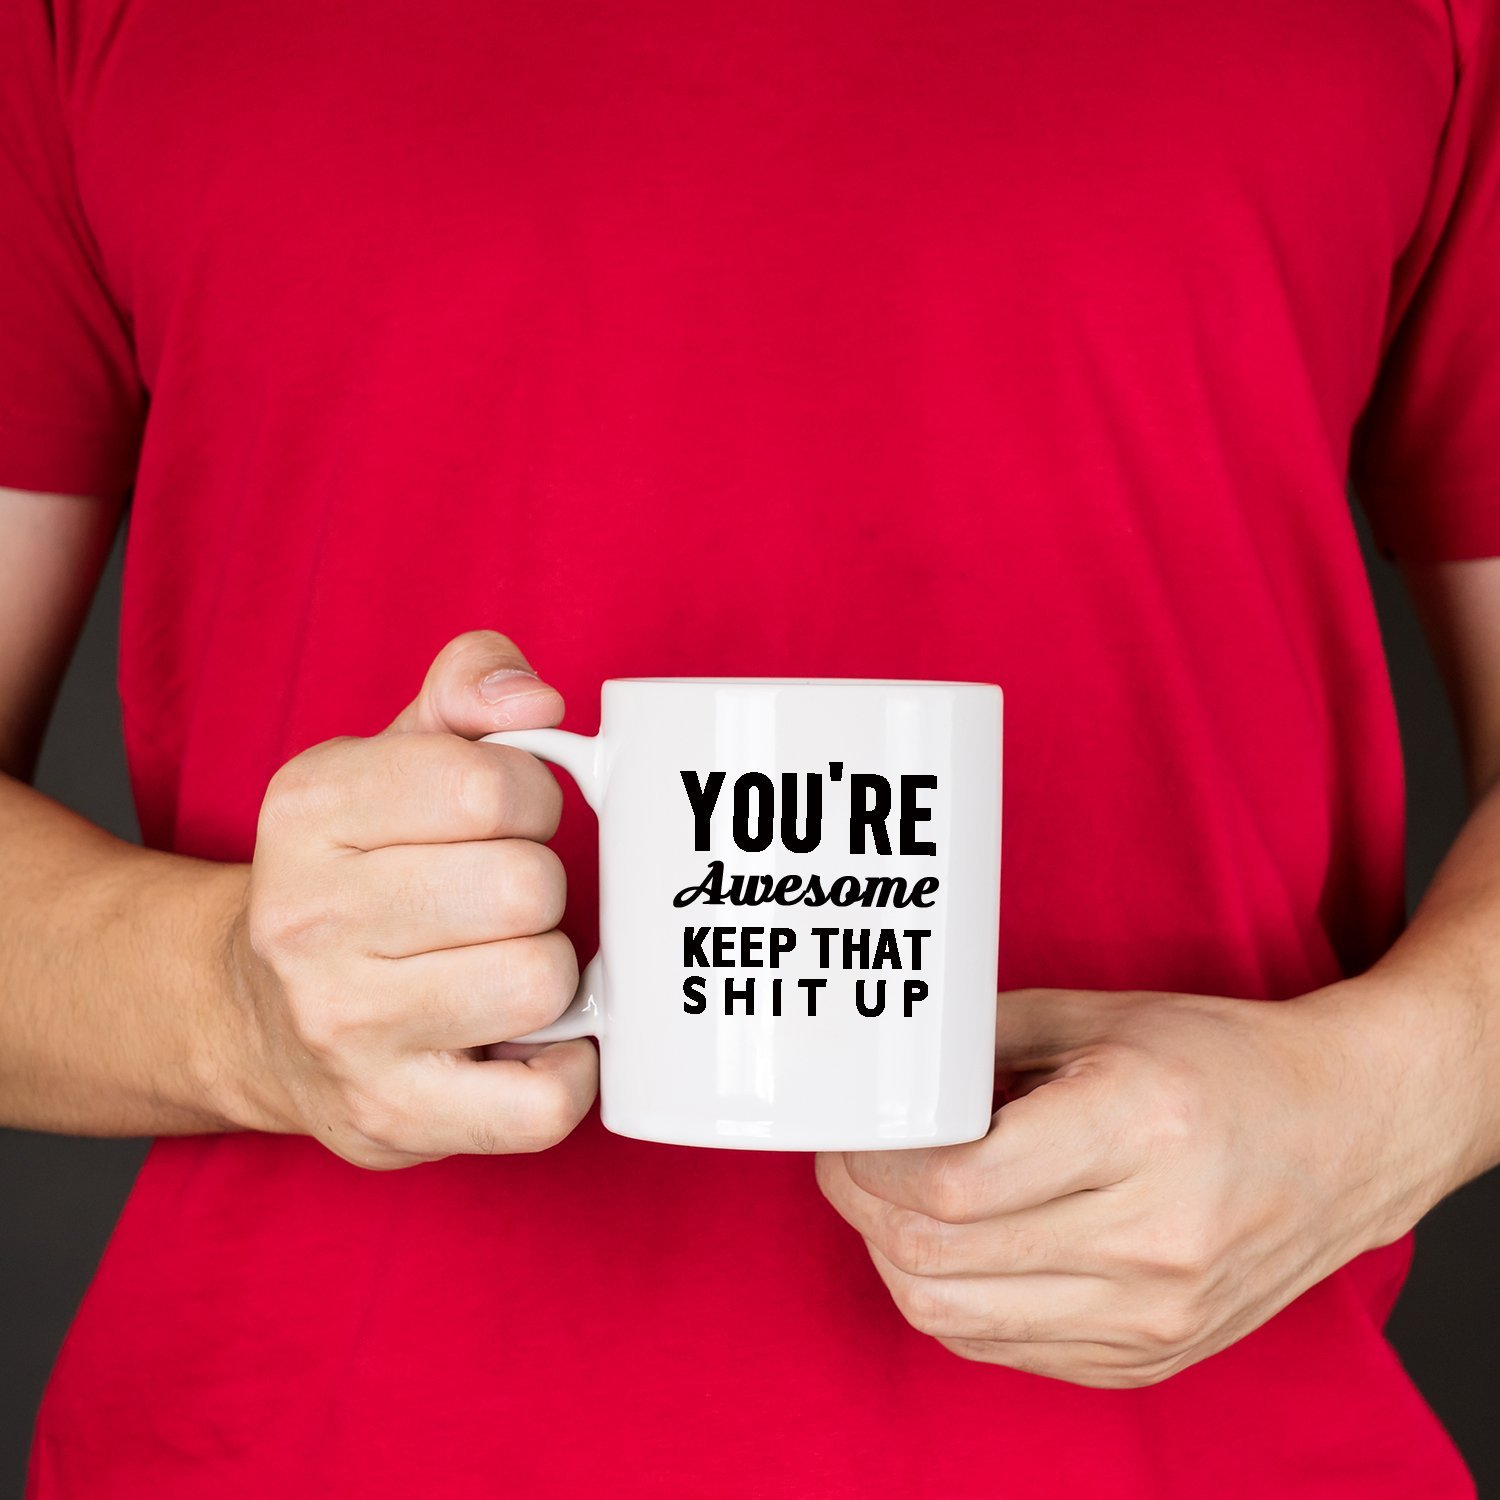 Giftideaworkshop Youre Awesome Keep That Shit Up Funny Coffee Mug Set 11oz,Novelty Gifts for Men and Women,Best Friend,Office Coworker,Birthday,Christmas Gifts